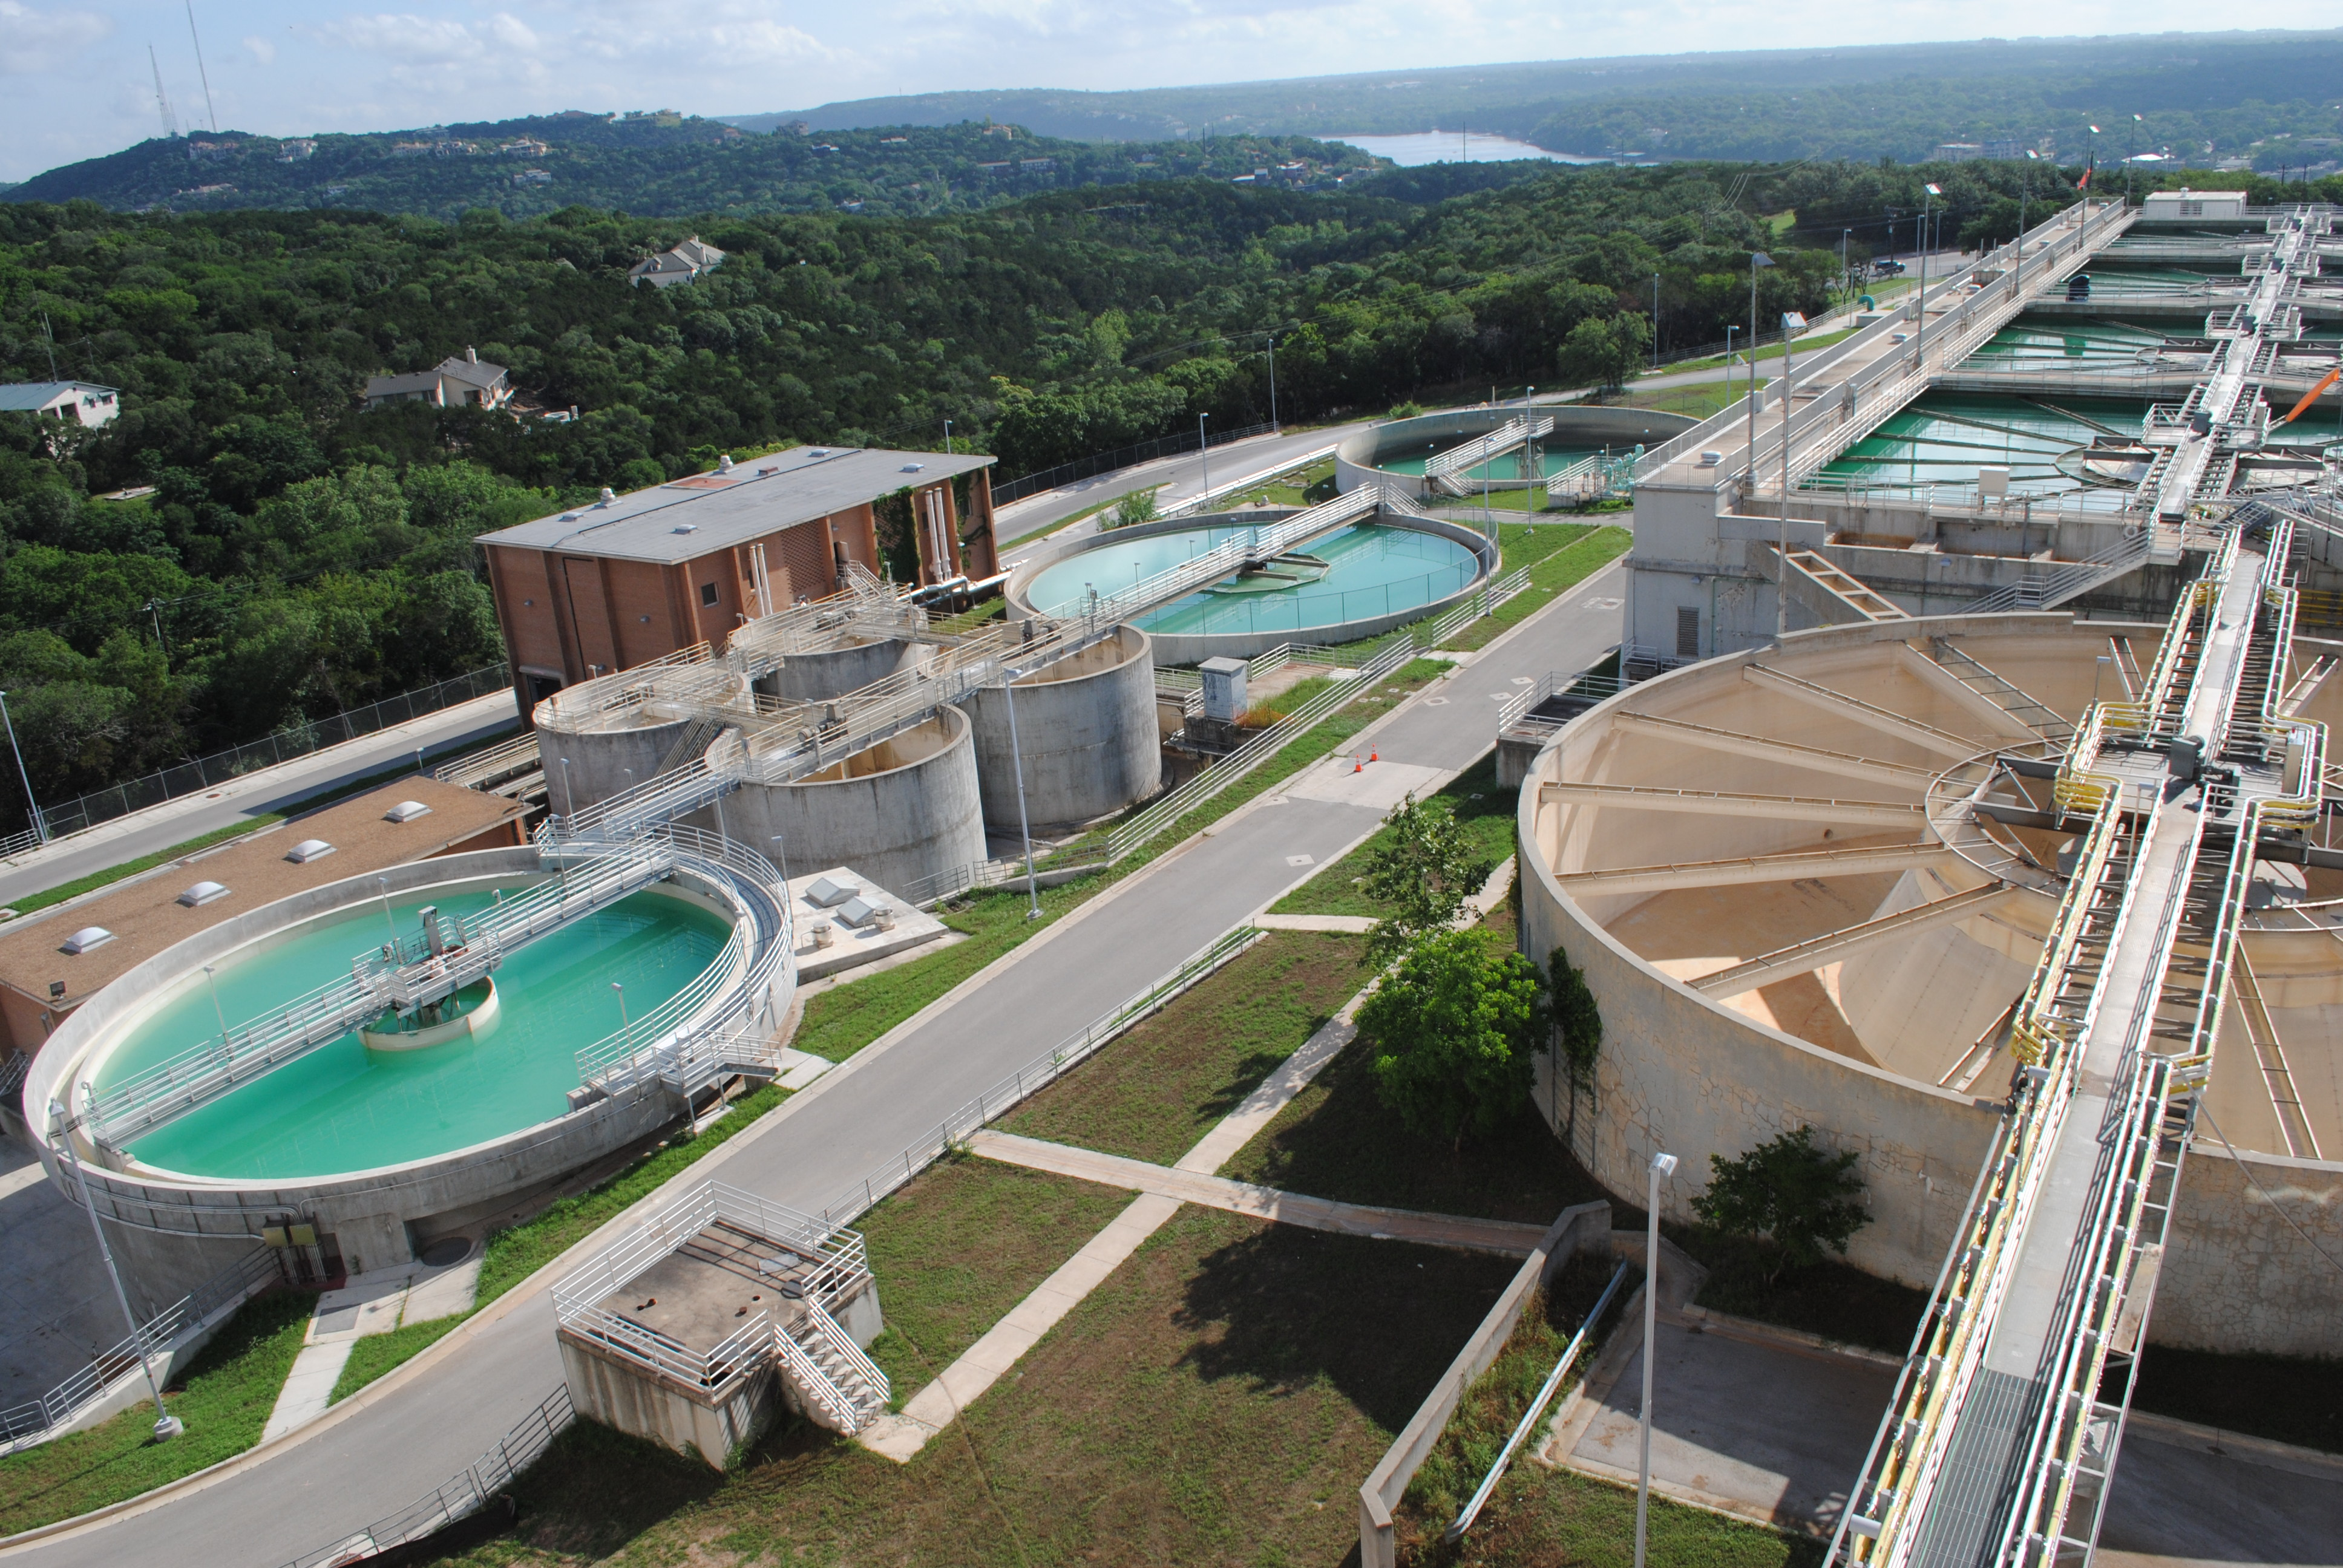 Picture of Ullrich Water Treatment Plant: Infrastructure improvements underway with new near-zero interest rate loans through the Texas Water Development Board